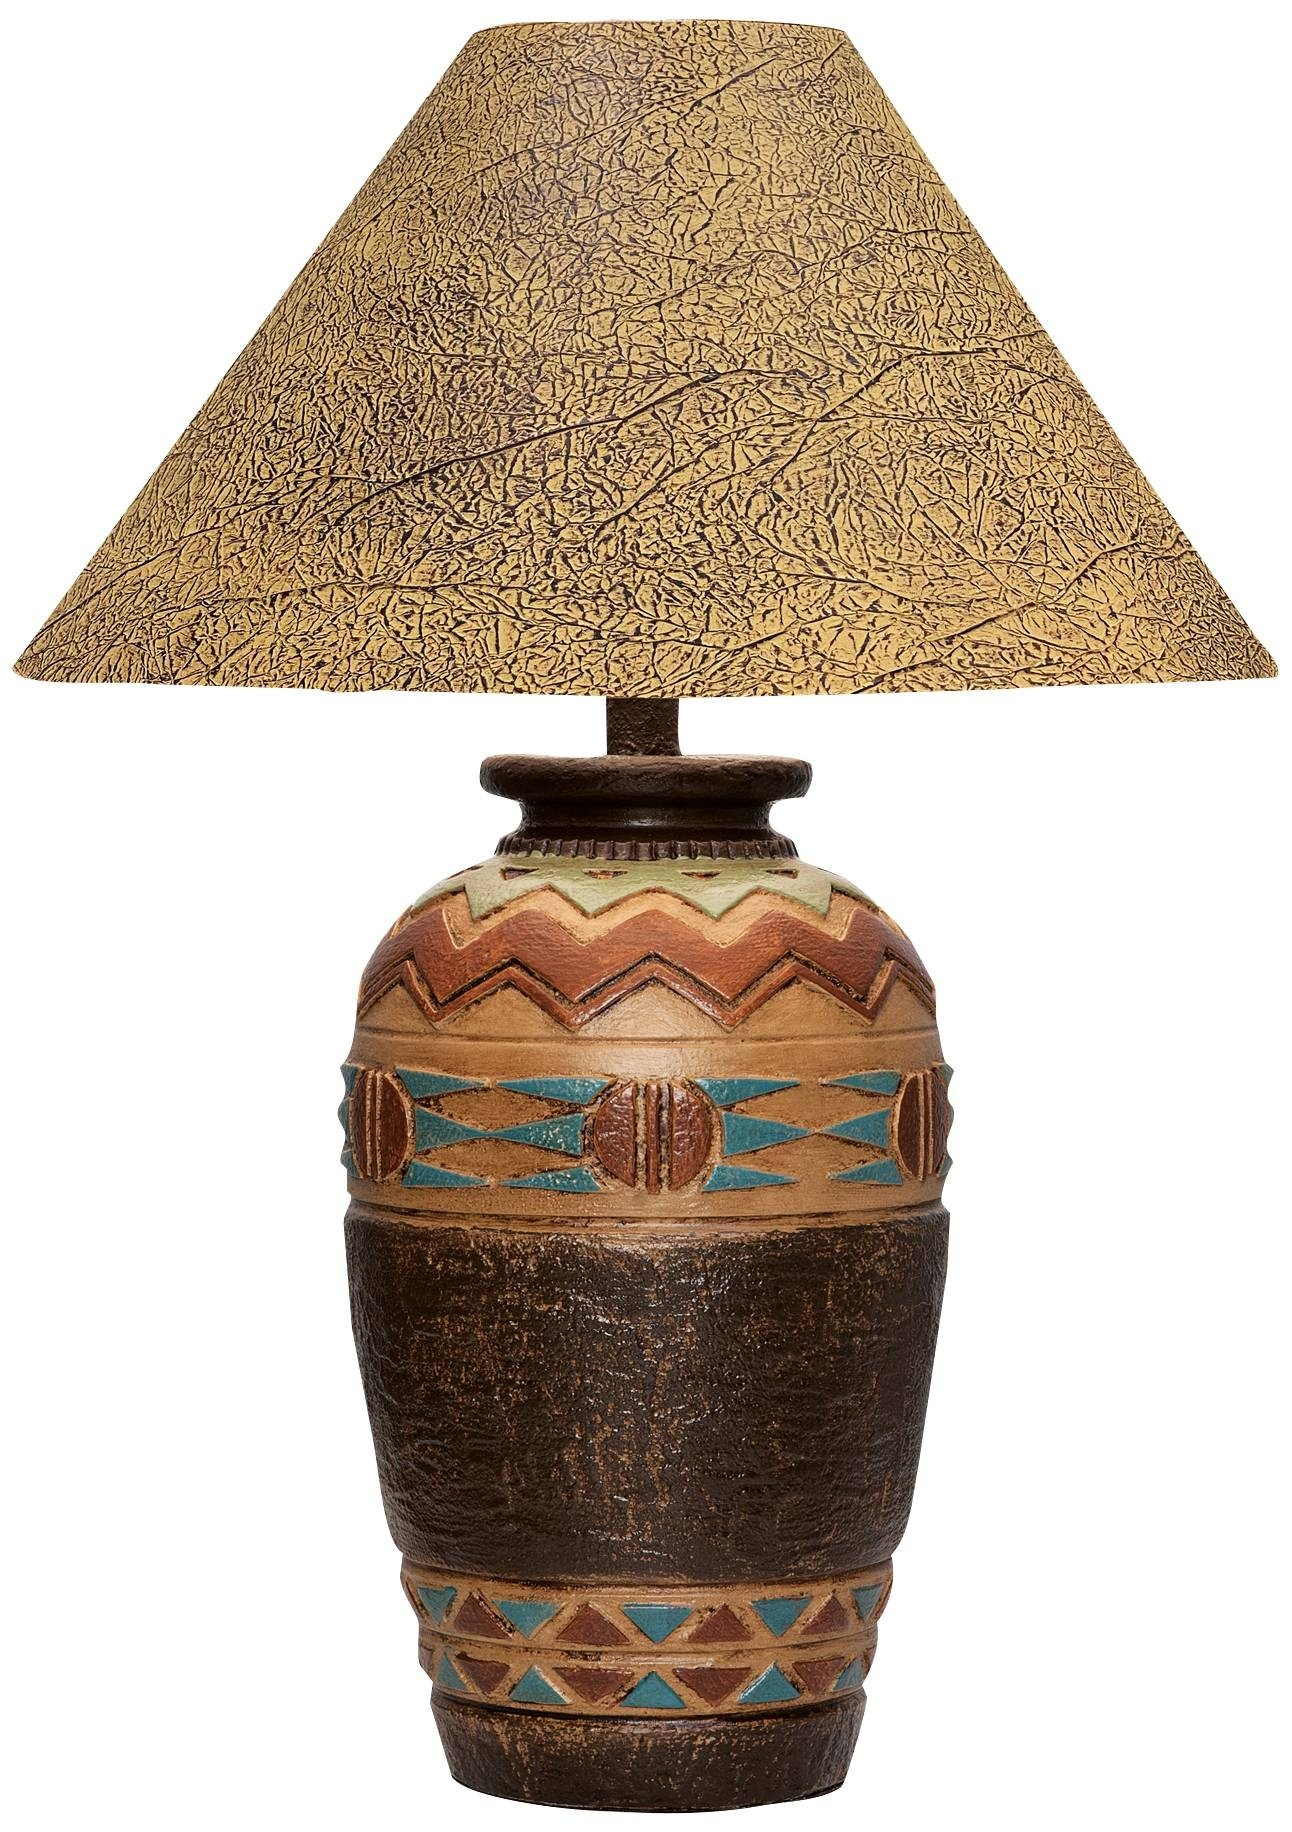 Delightful Southwestern Table Lamp 2